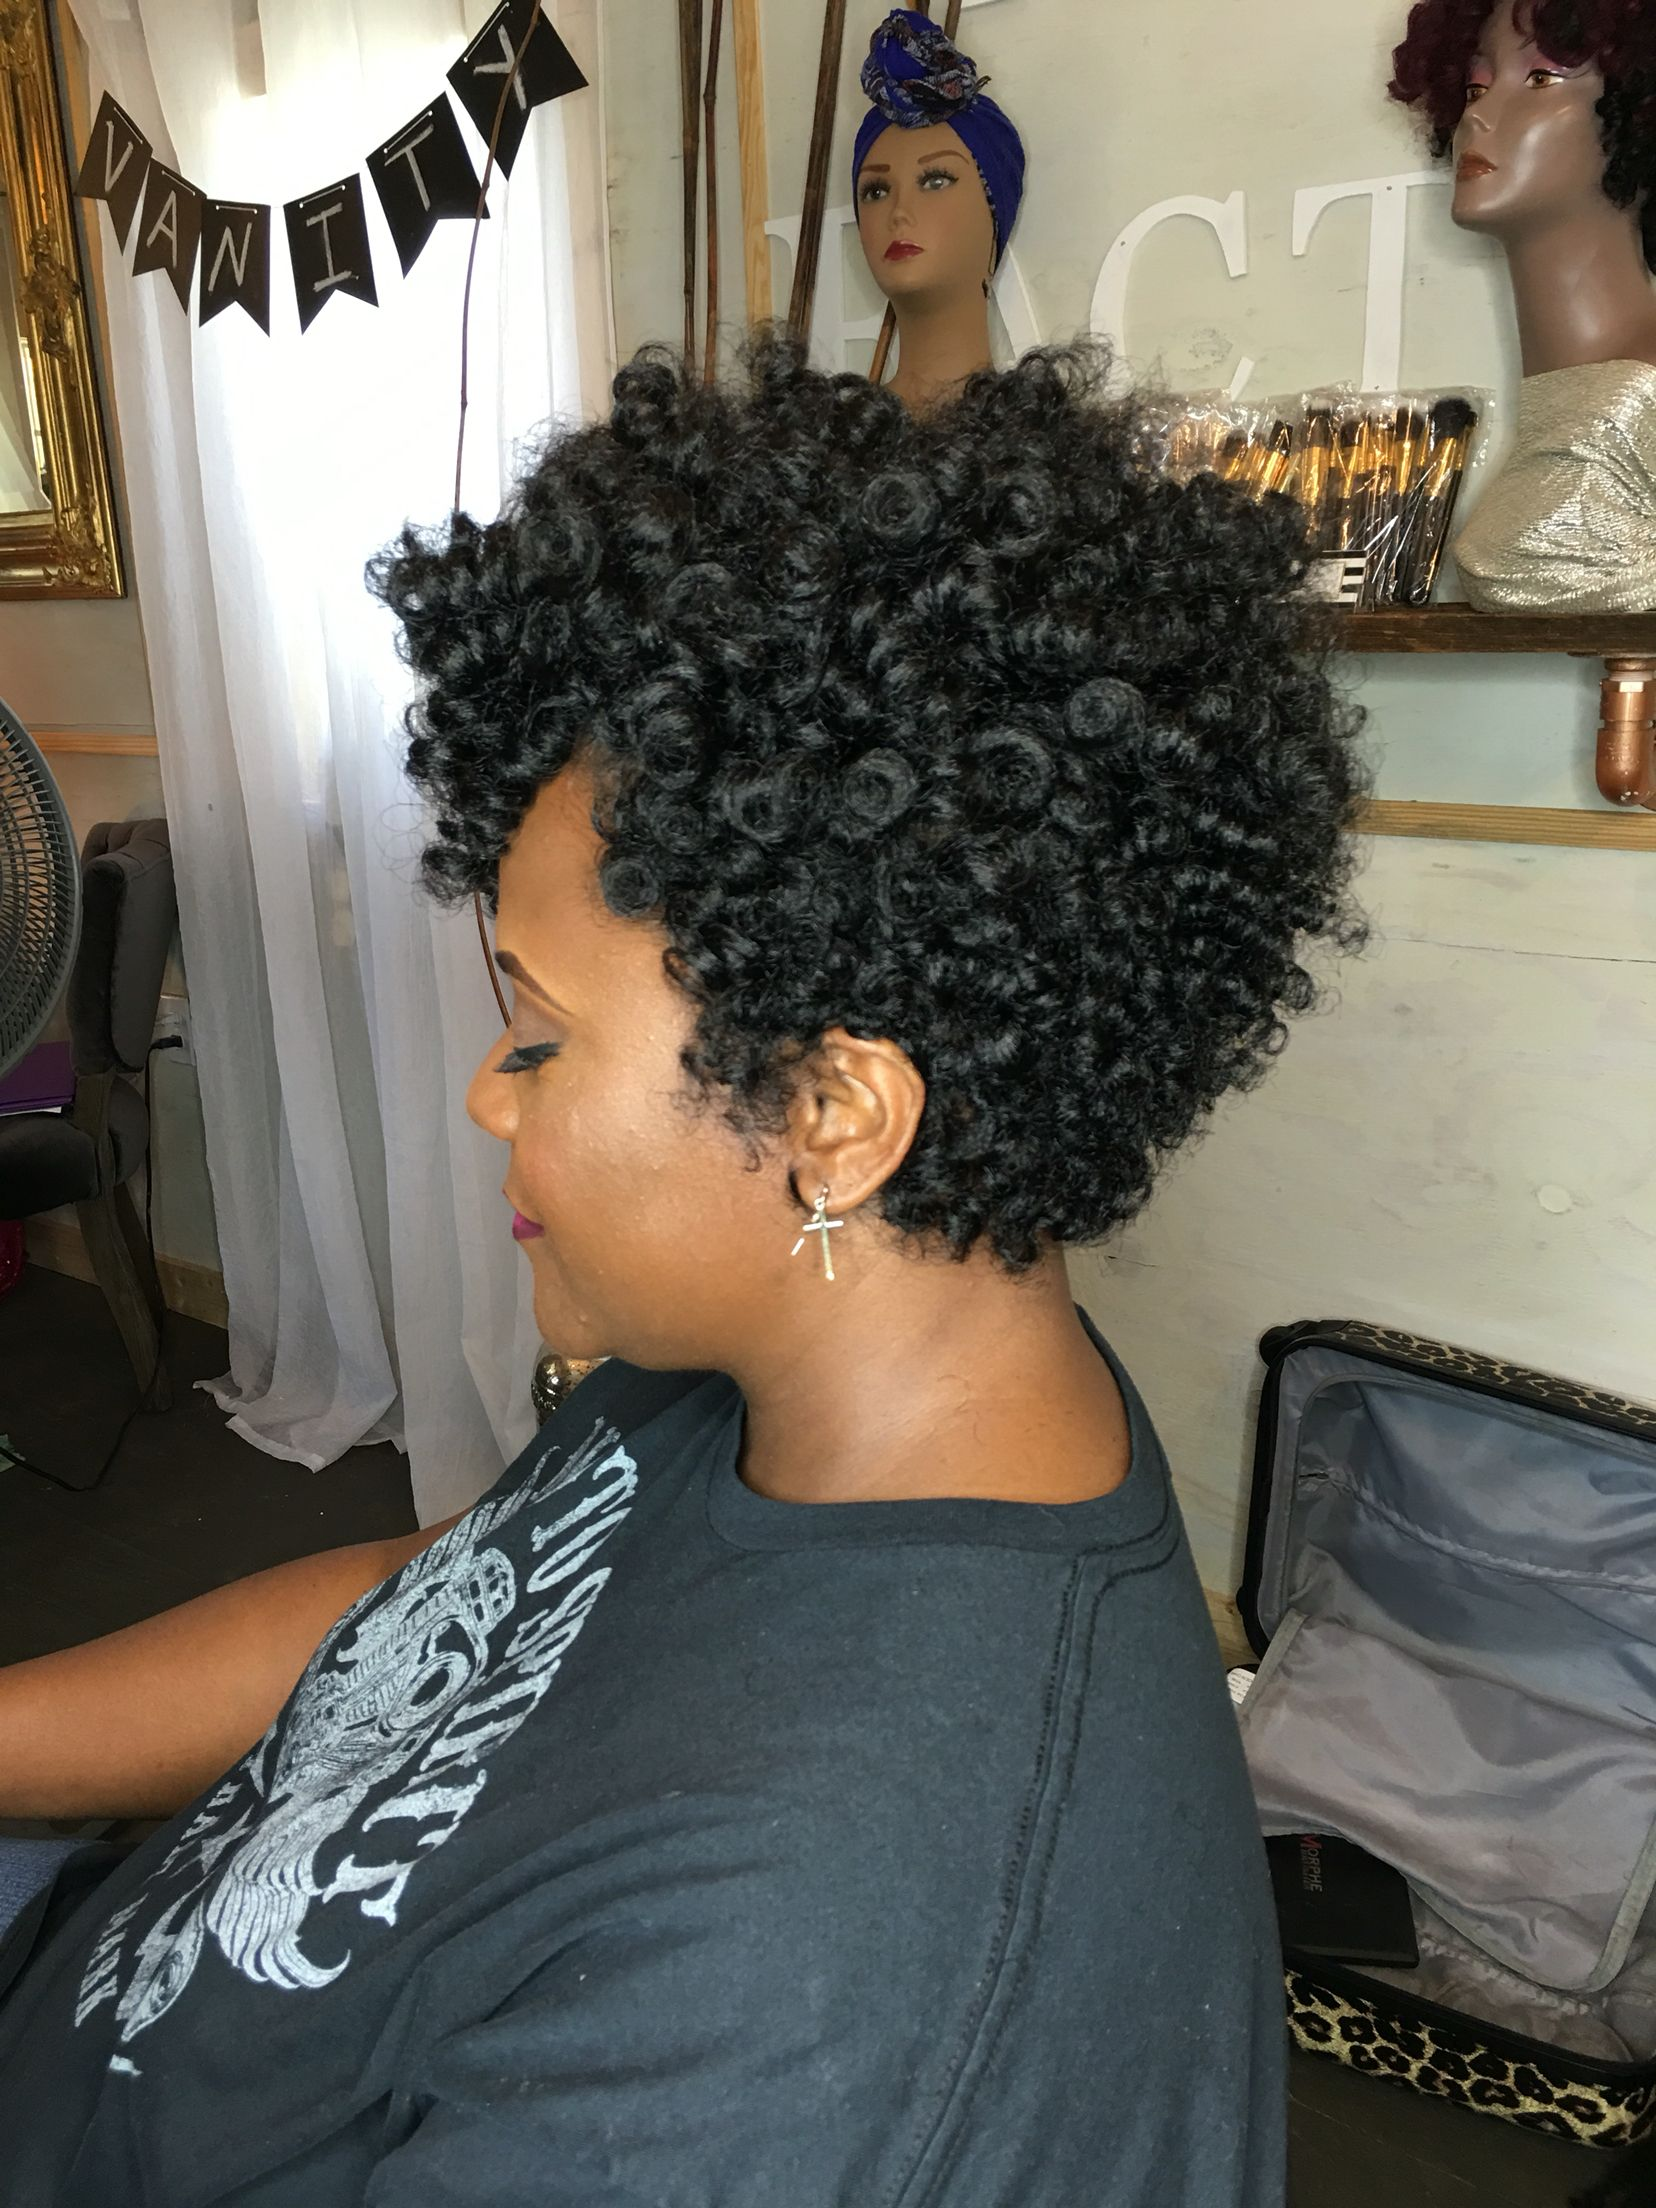 Natural hairstyles for short hair black women hair and tattoos - Find This Pin And More On Black Hairstyles